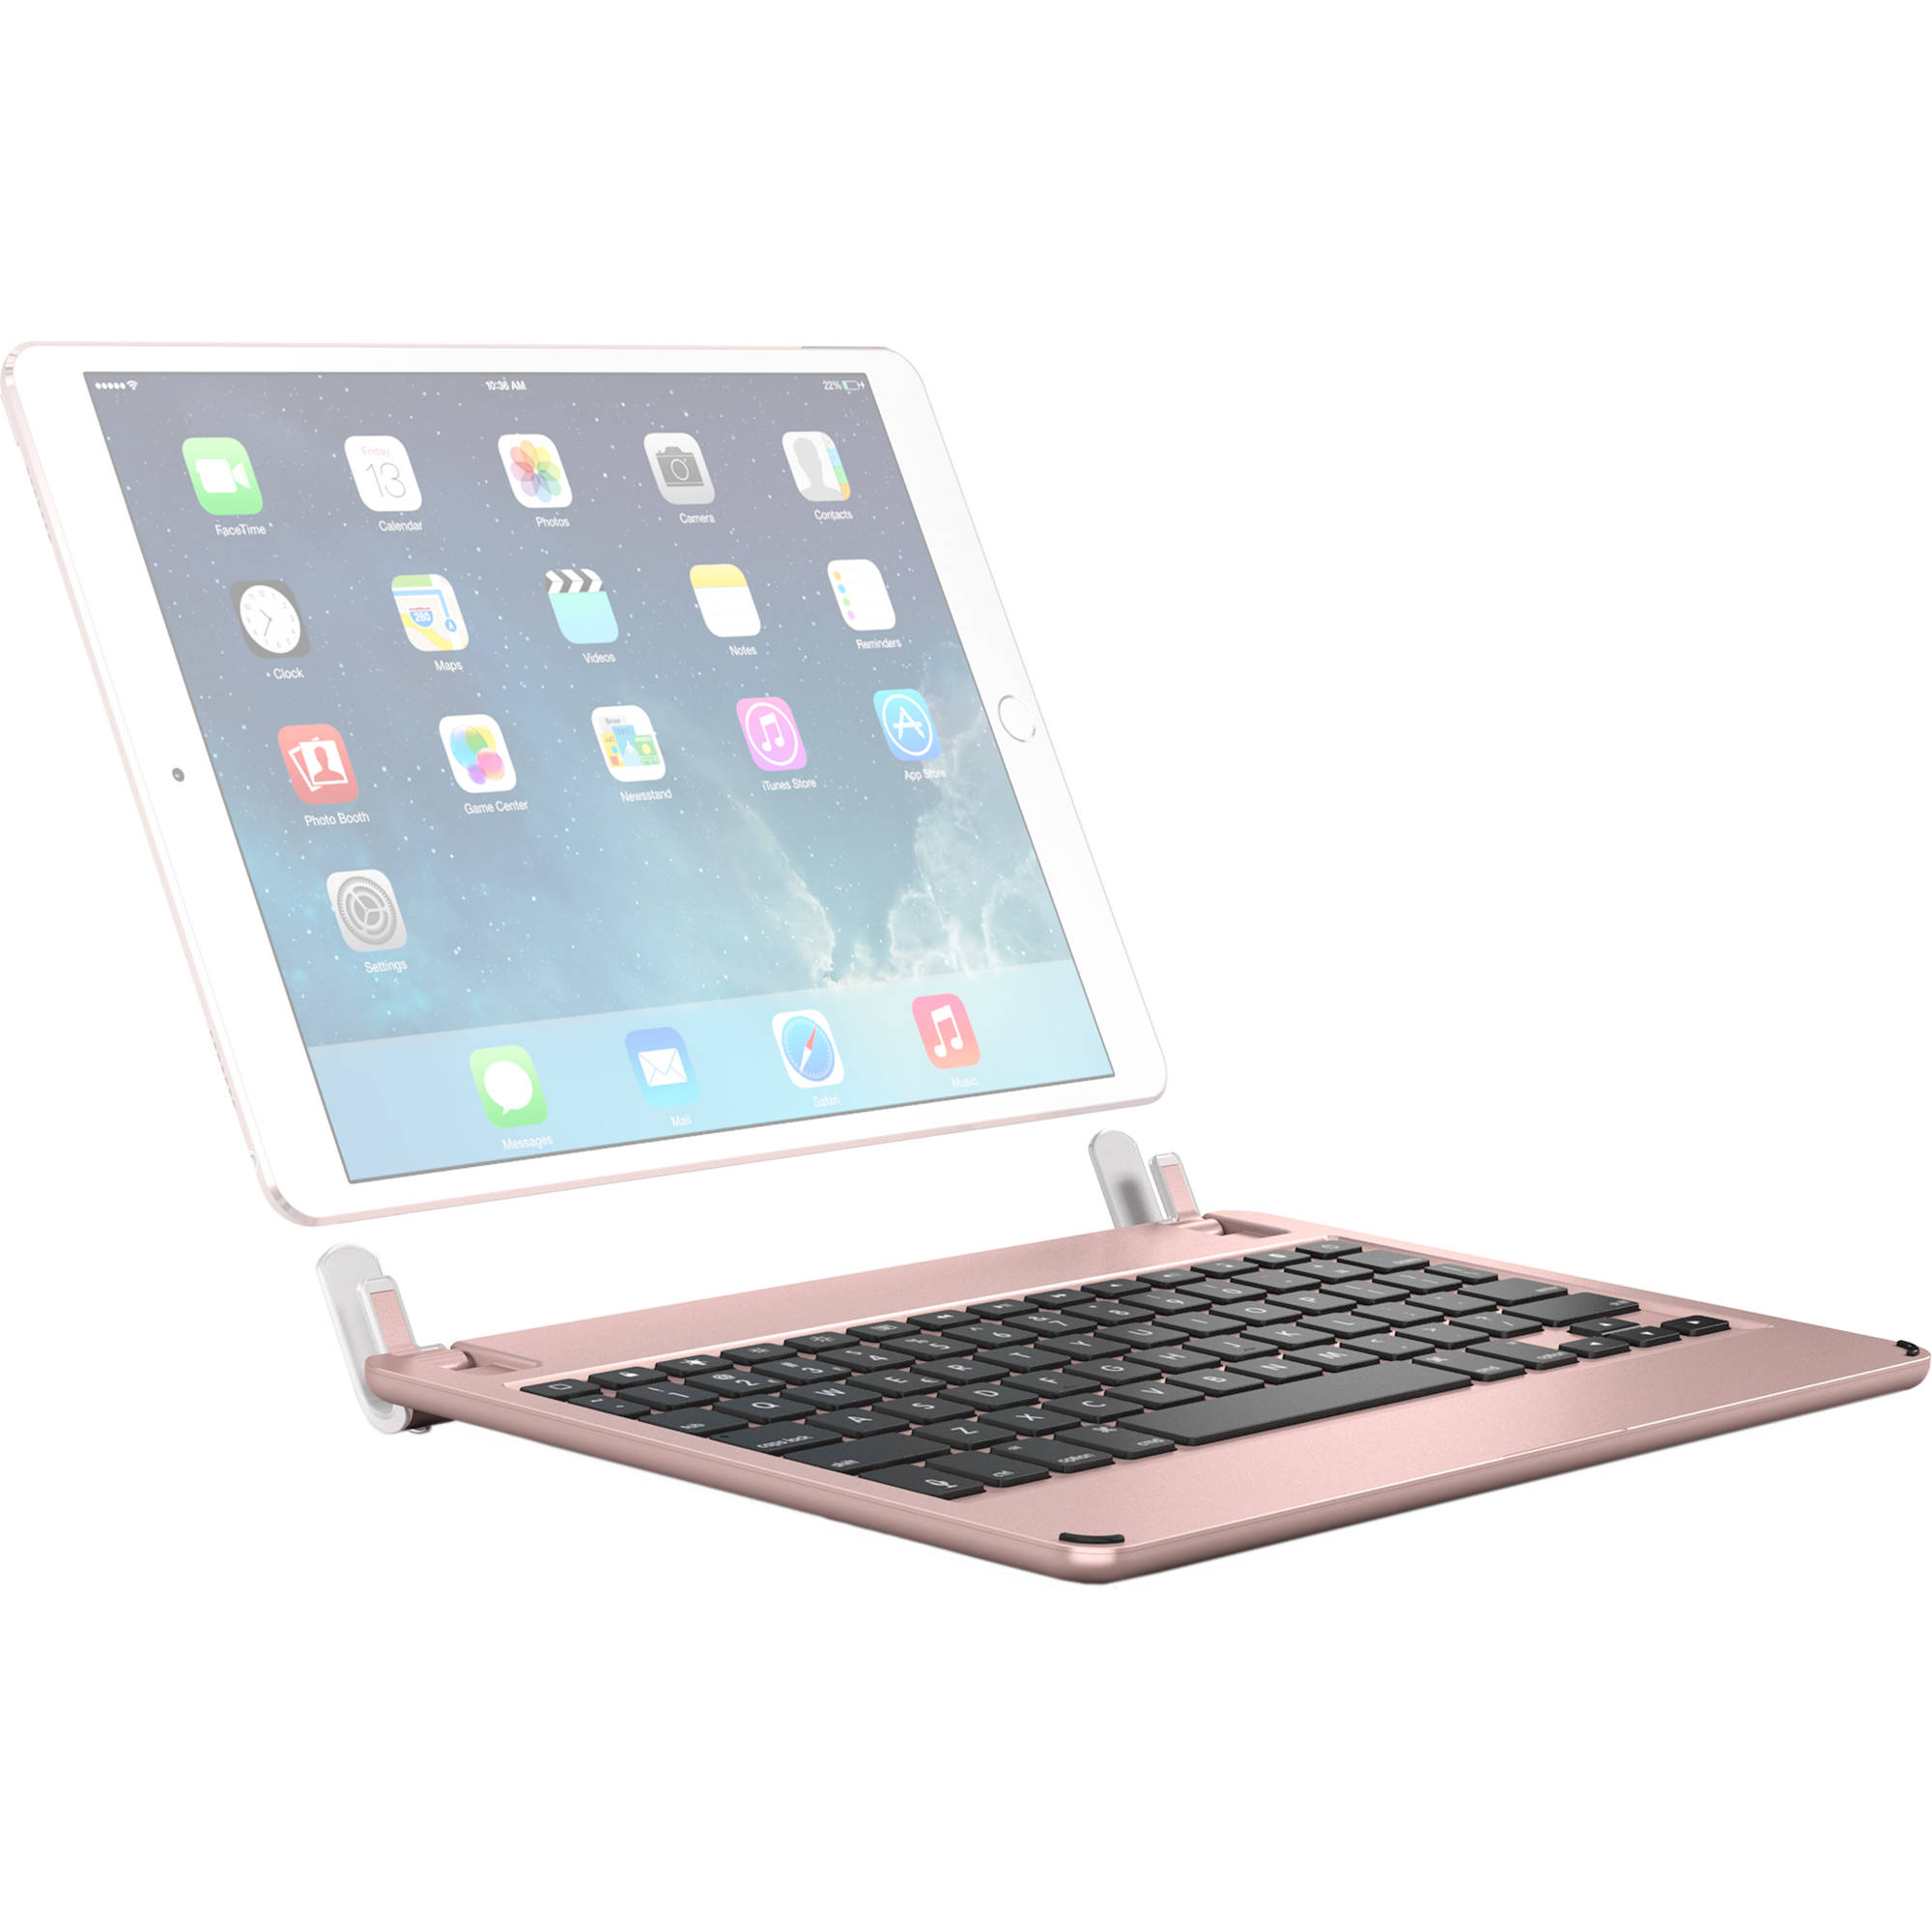 "Brydge 10.5 Bluetooth Keyboard For 10.5"" IPad Pro BRY8004"